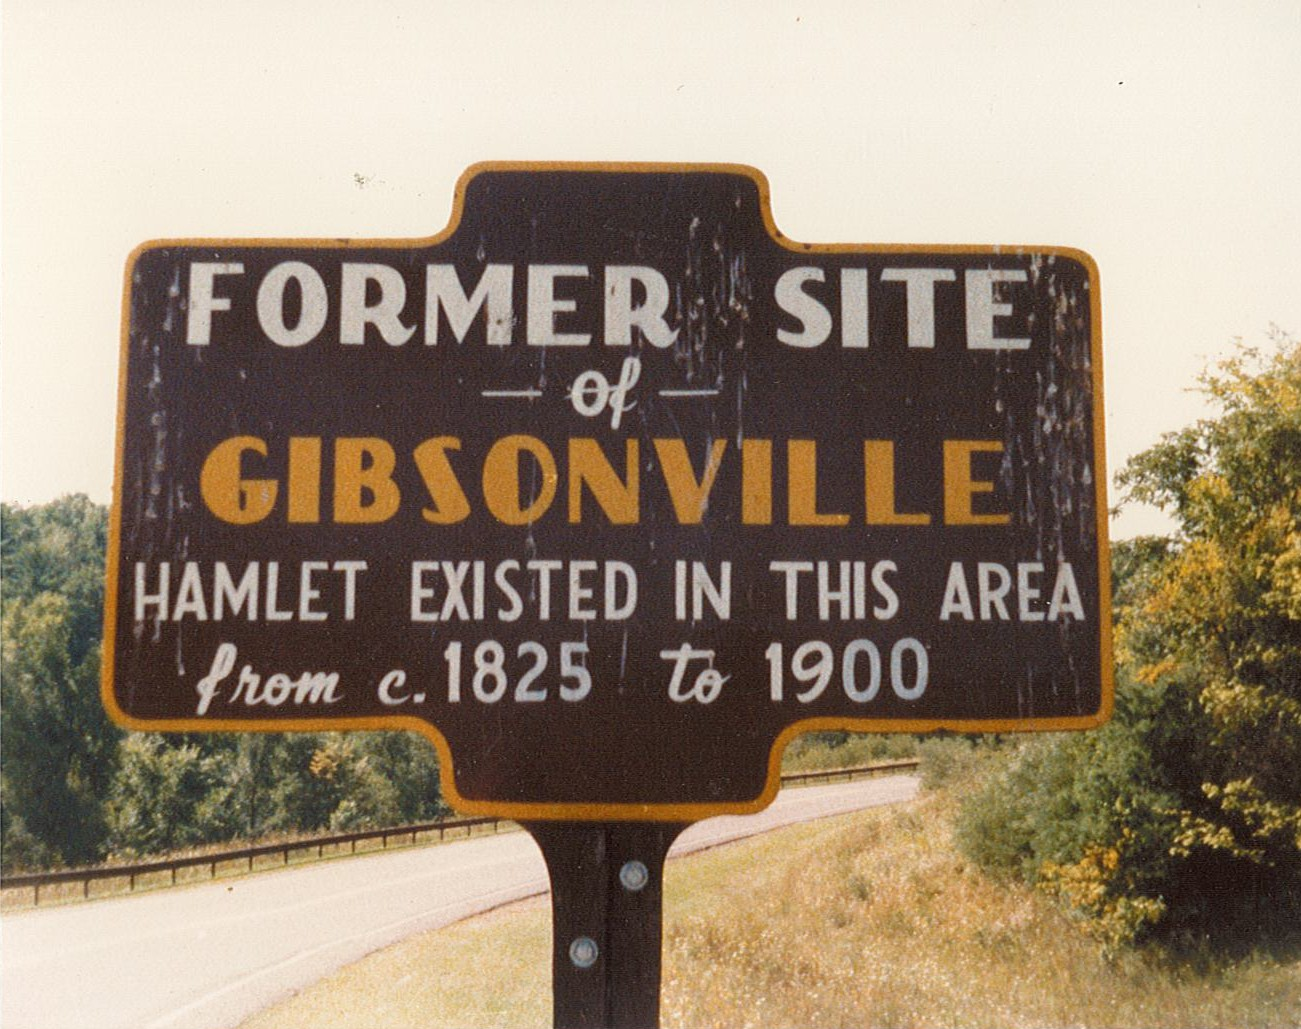 Image of vintagee historical marker sign for Gibsonville